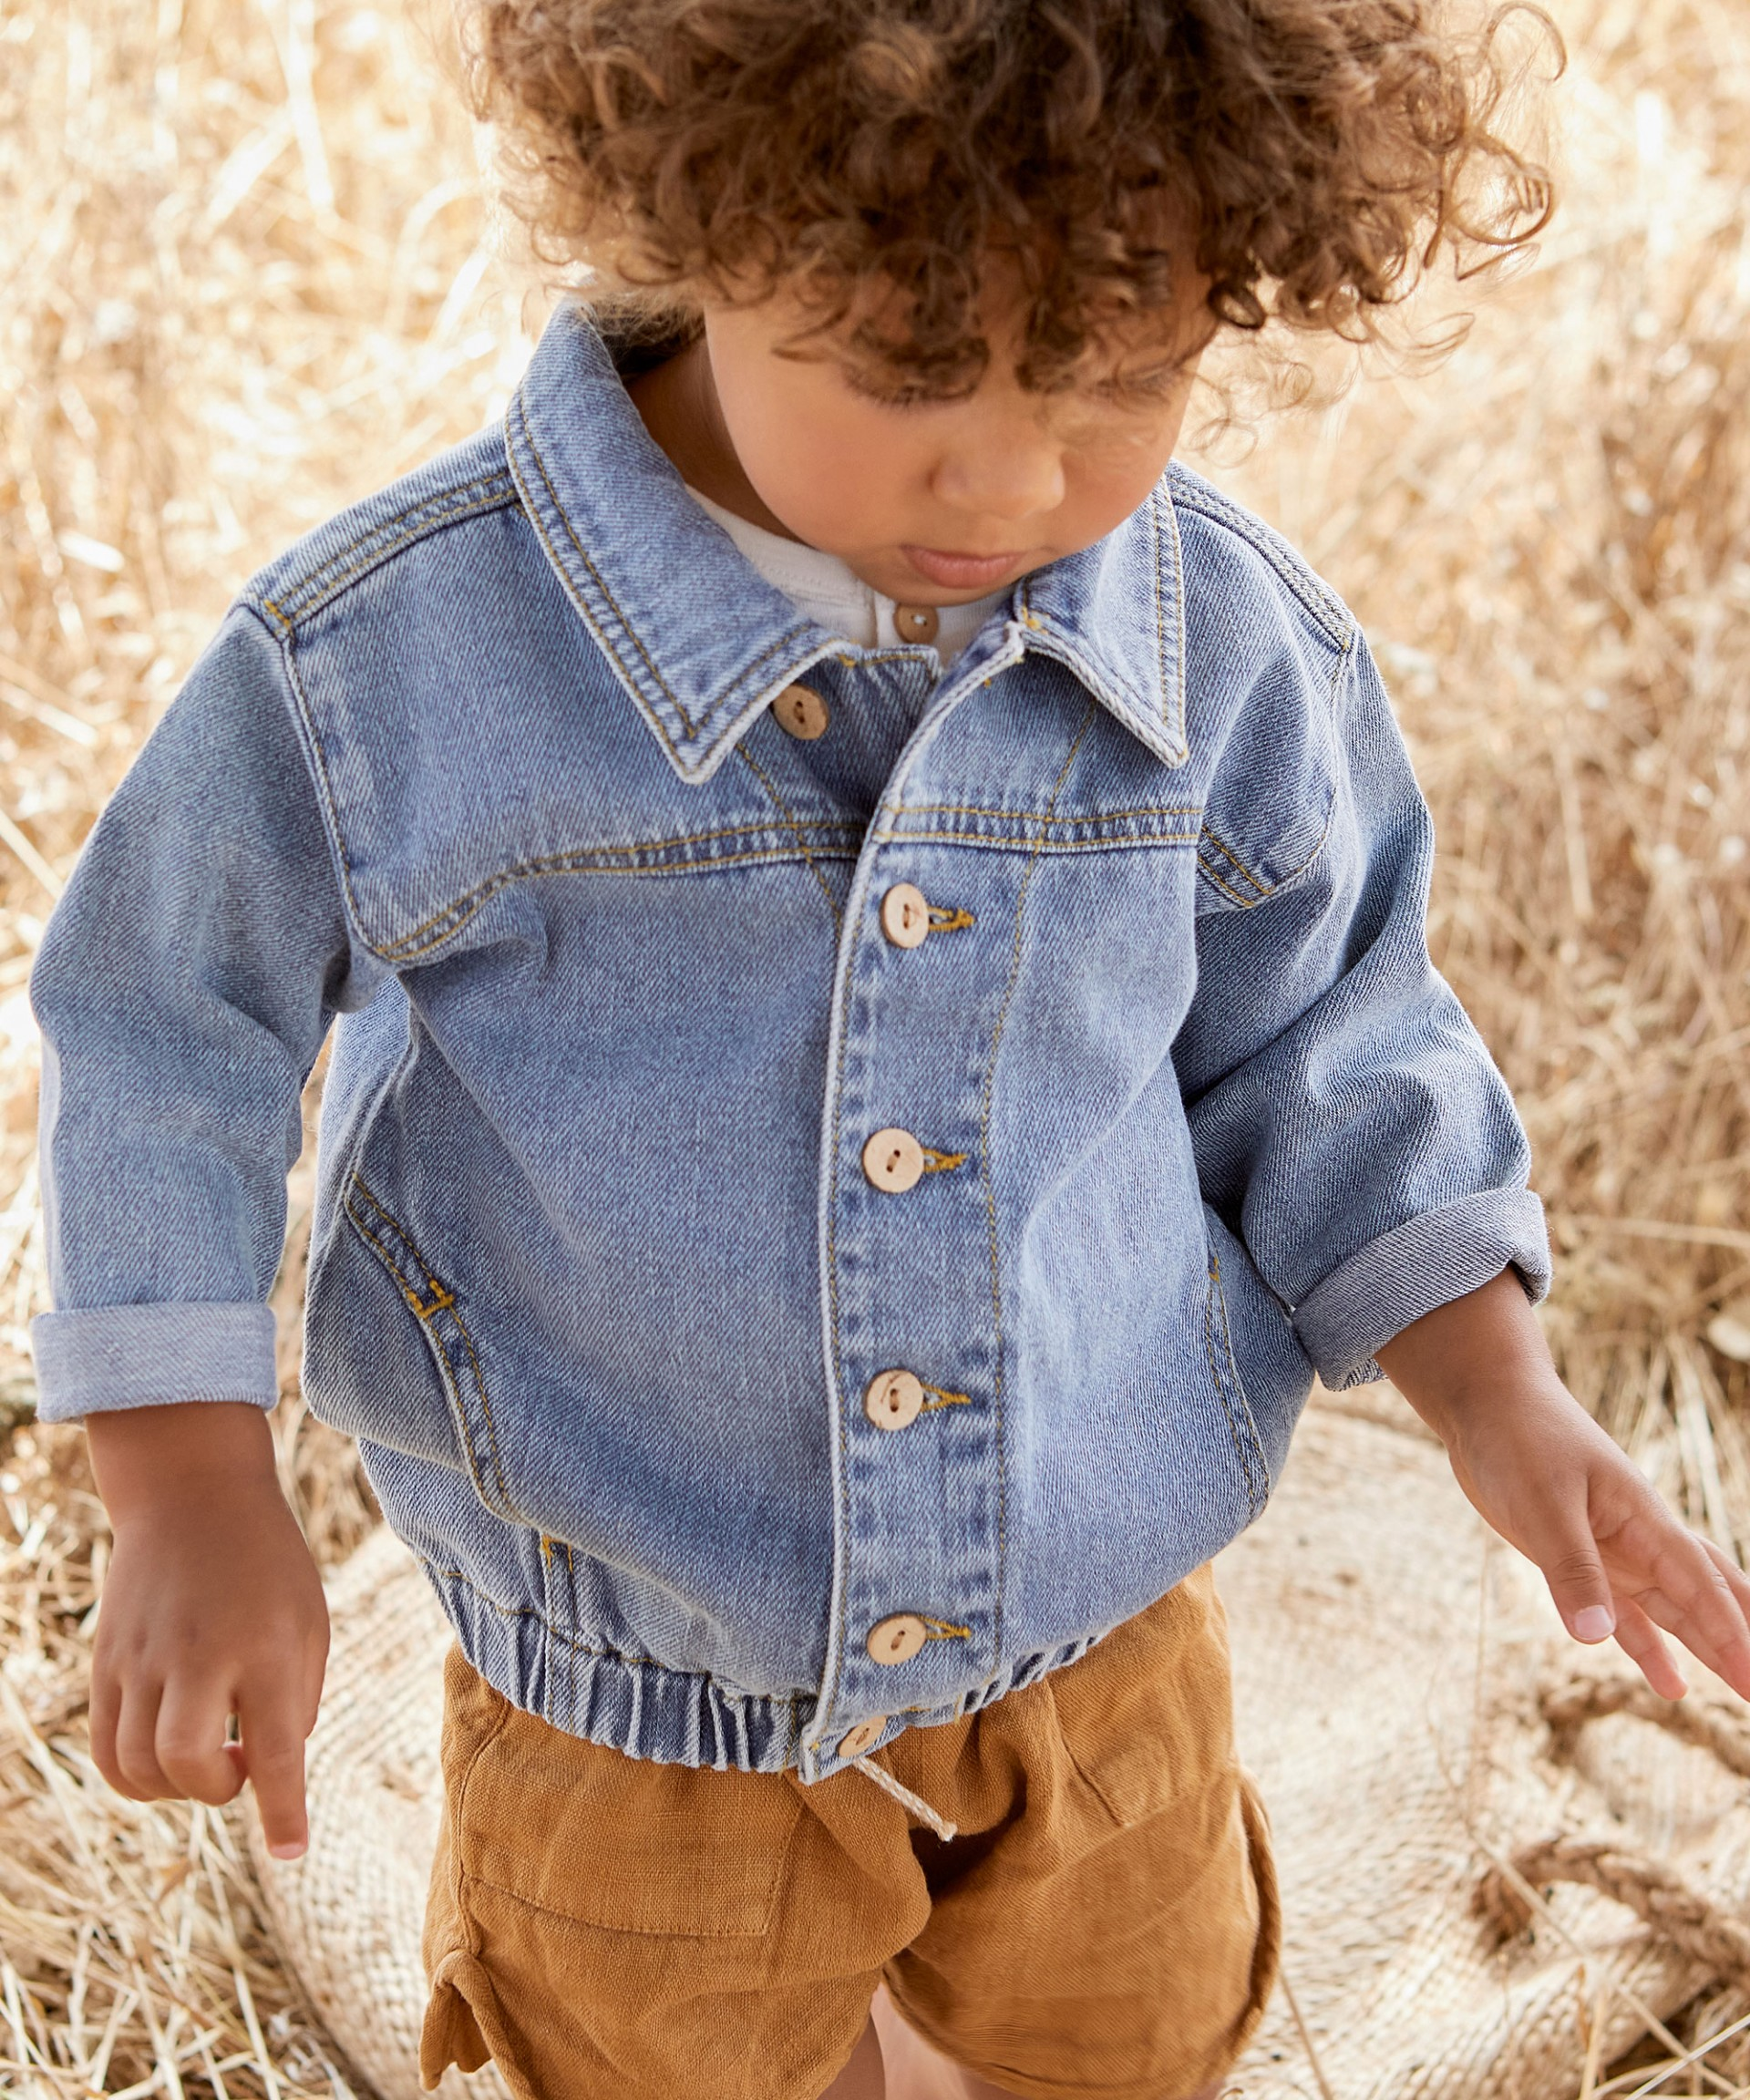 Denim jacket with buttons | Botany